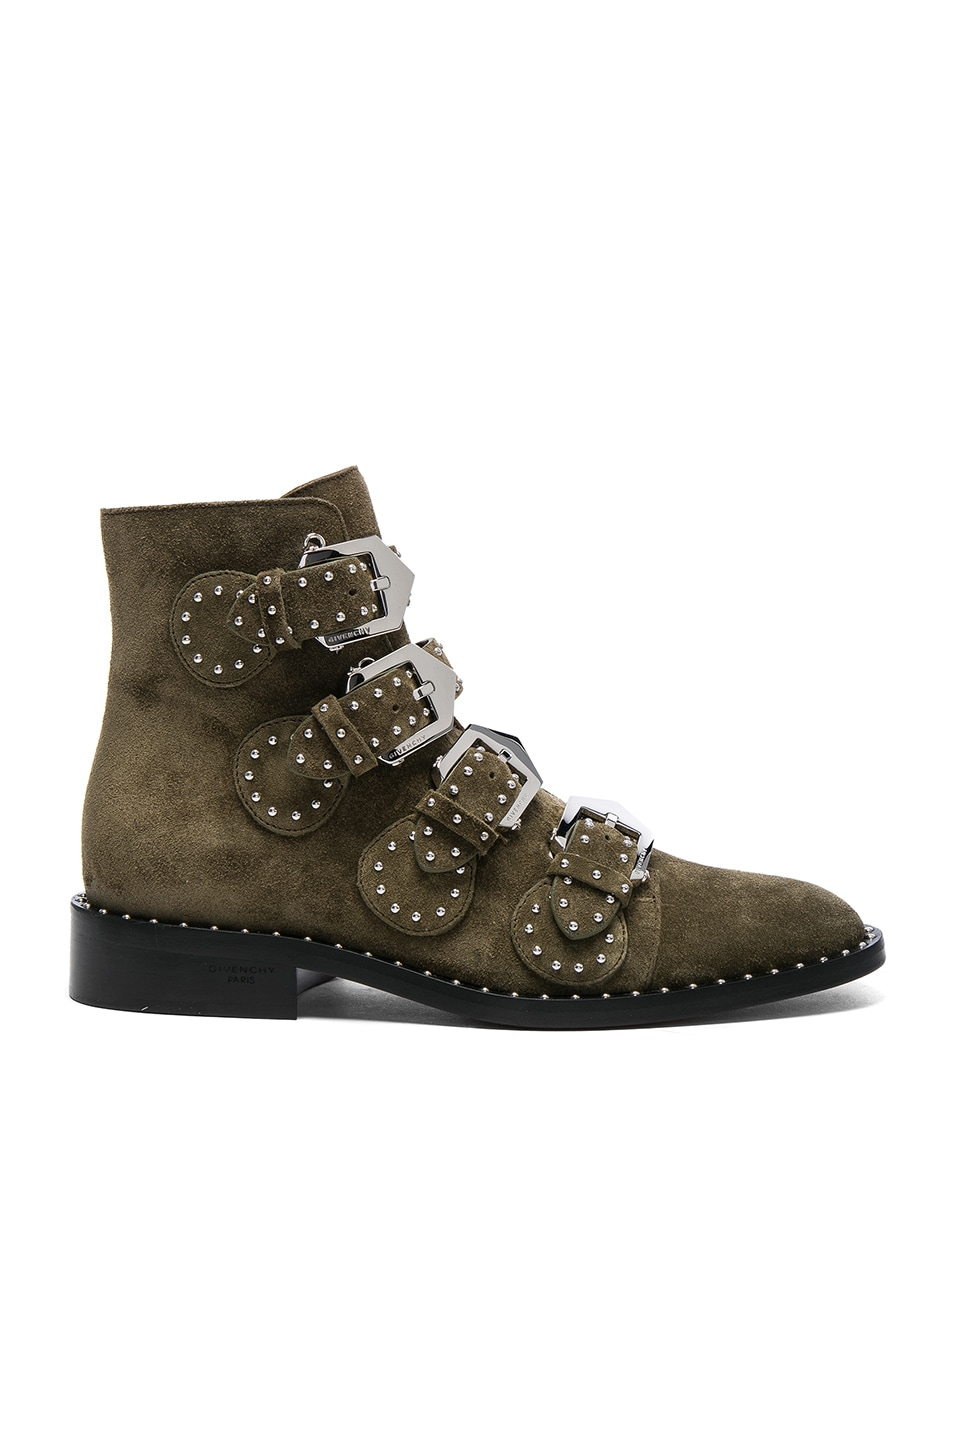 Image 1 of Givenchy Elegant Studded Suede Ankle Boots in Khaki